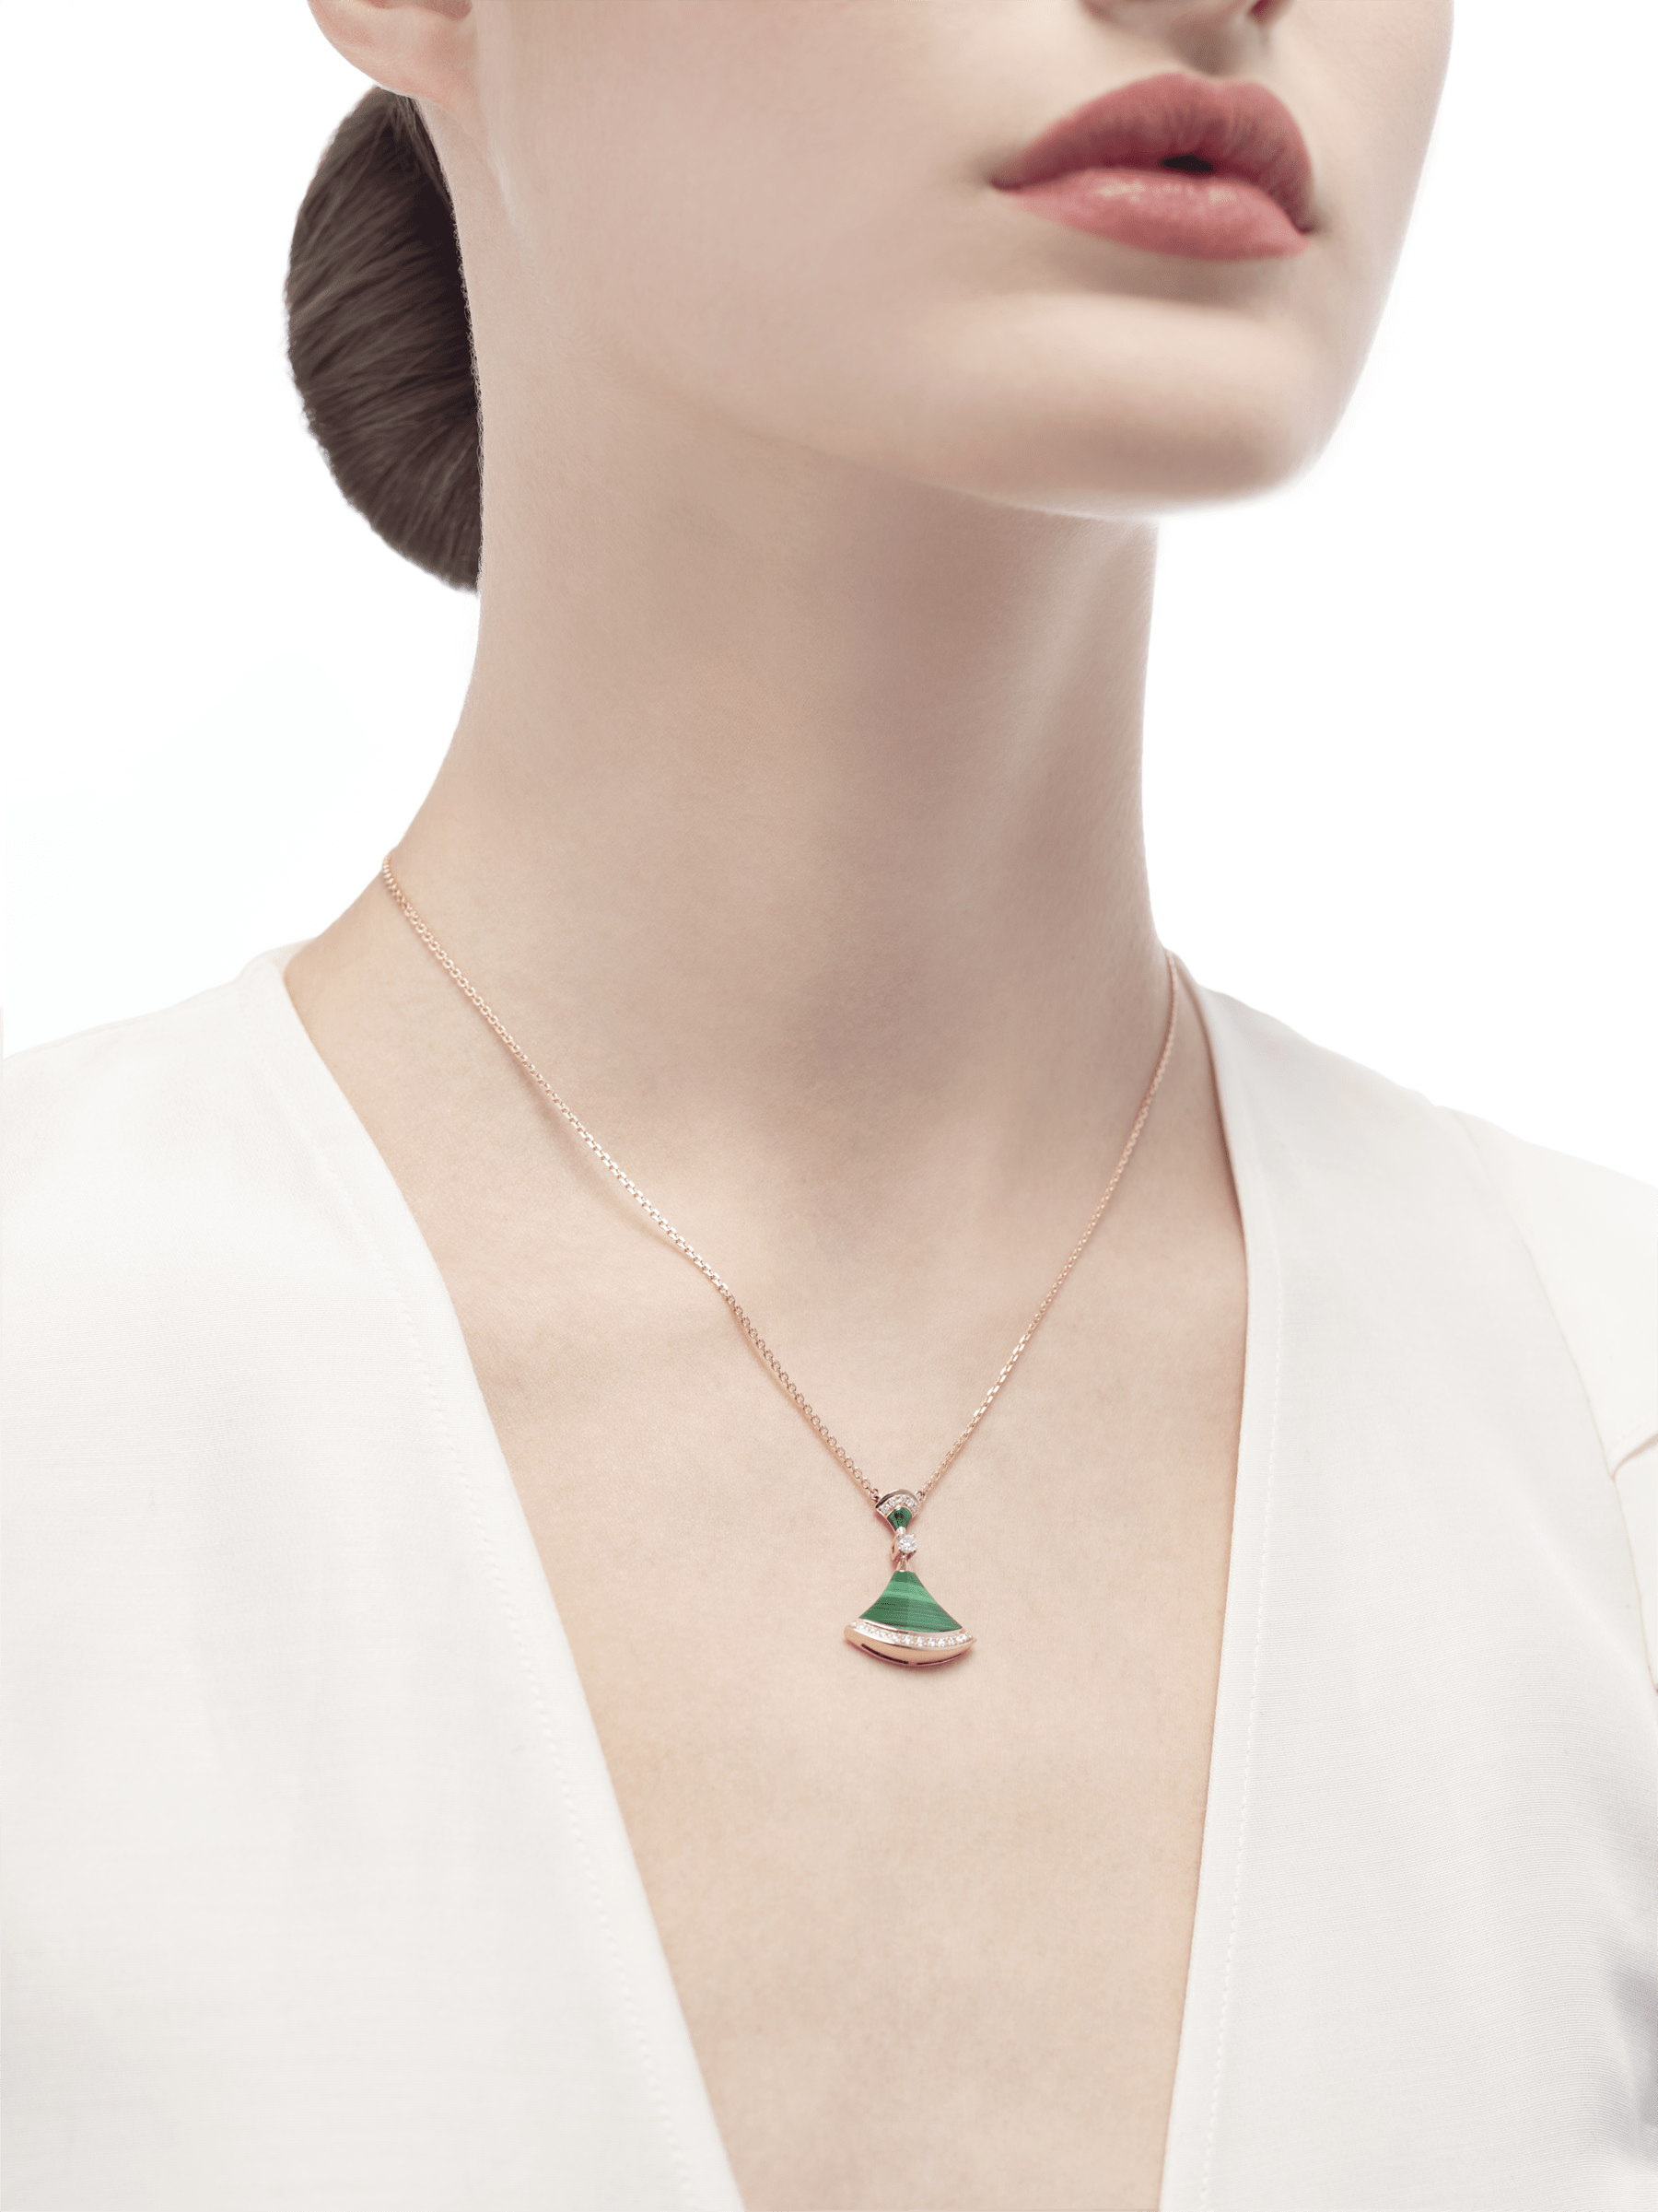 DIVAS' DREAM necklace in 18 kt rose gold with pendant set with a diamond, malachite elements and pavé diamonds. 351143 image 3